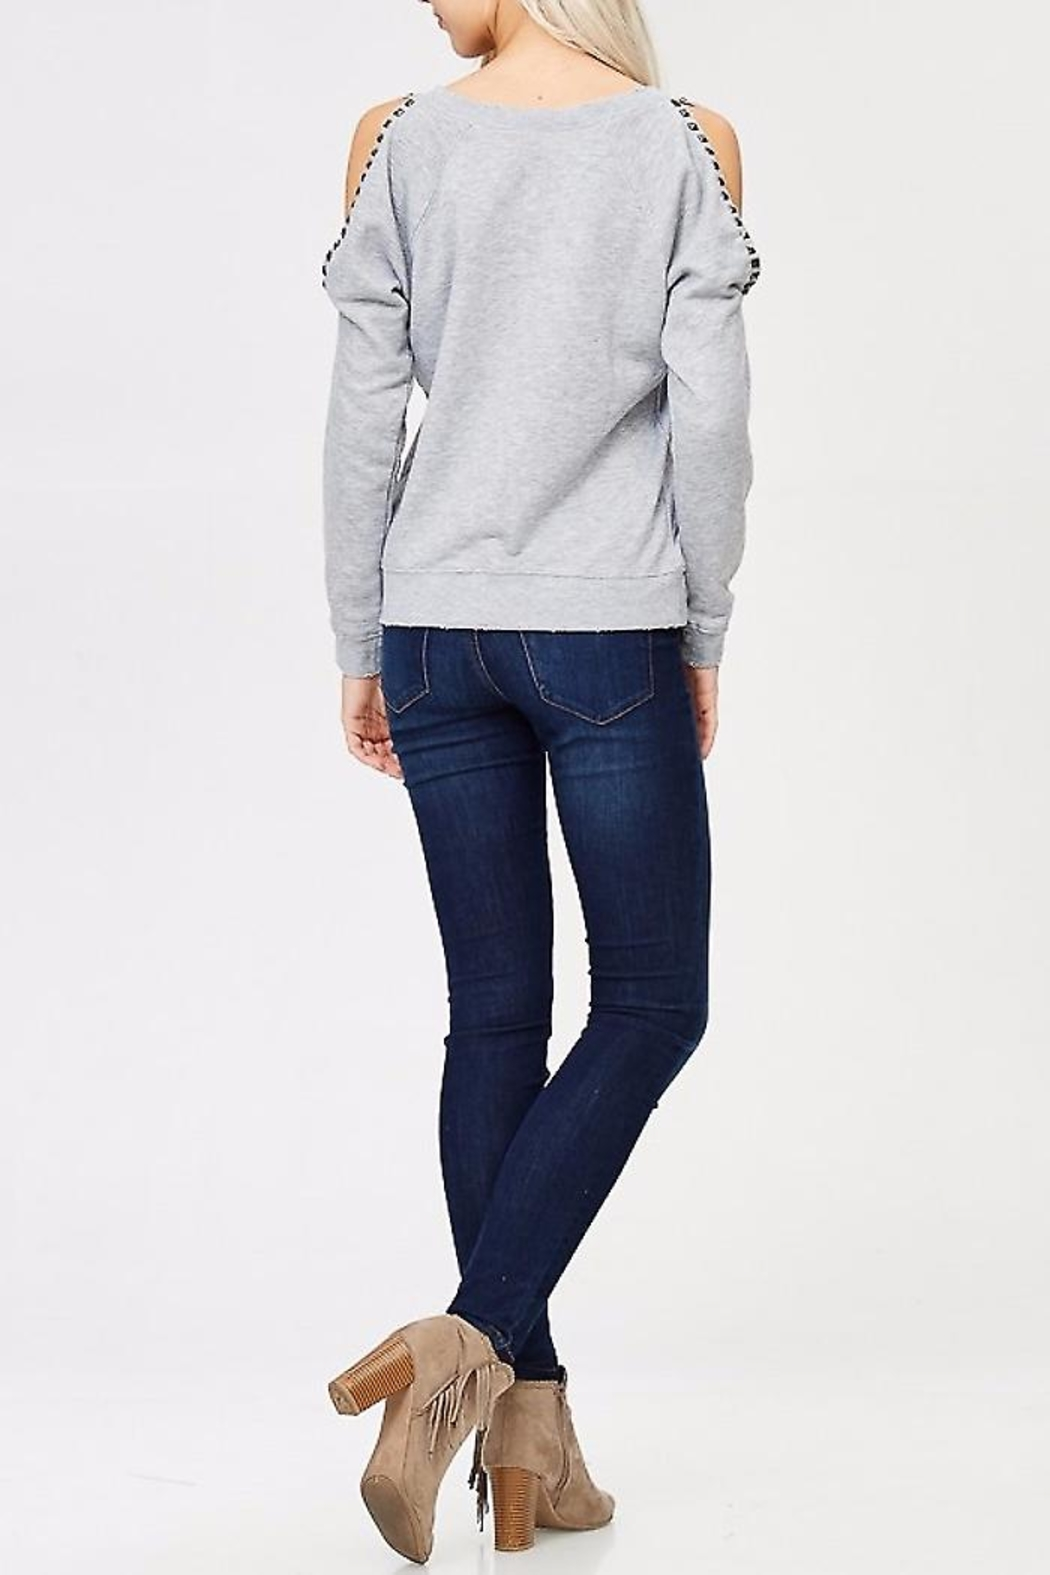 People Outfitter Studded Sweat Shirt - Front Full Image